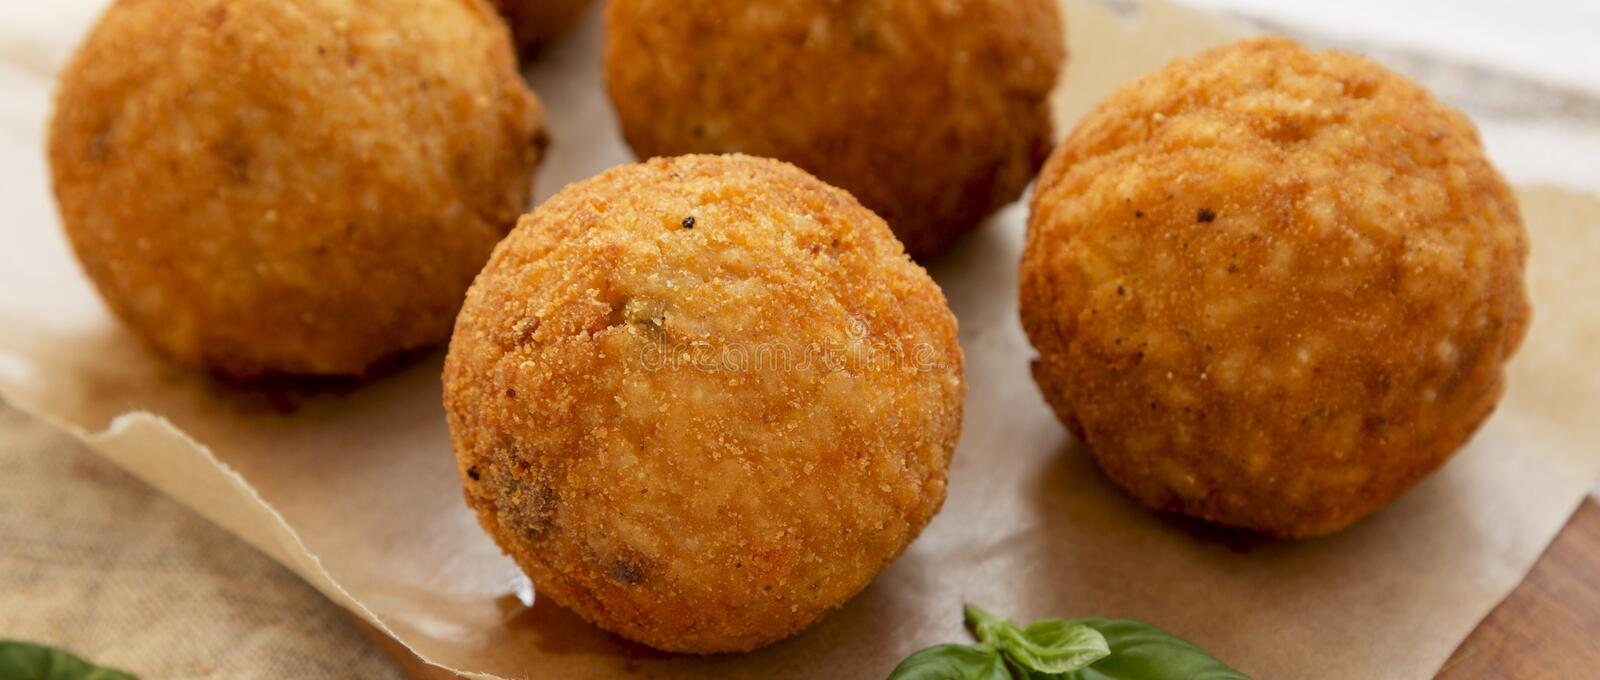 Homemade fried Arancini with basil on a rustic wooden board, low angle view. Italian rice balls. Closeup.  stock image